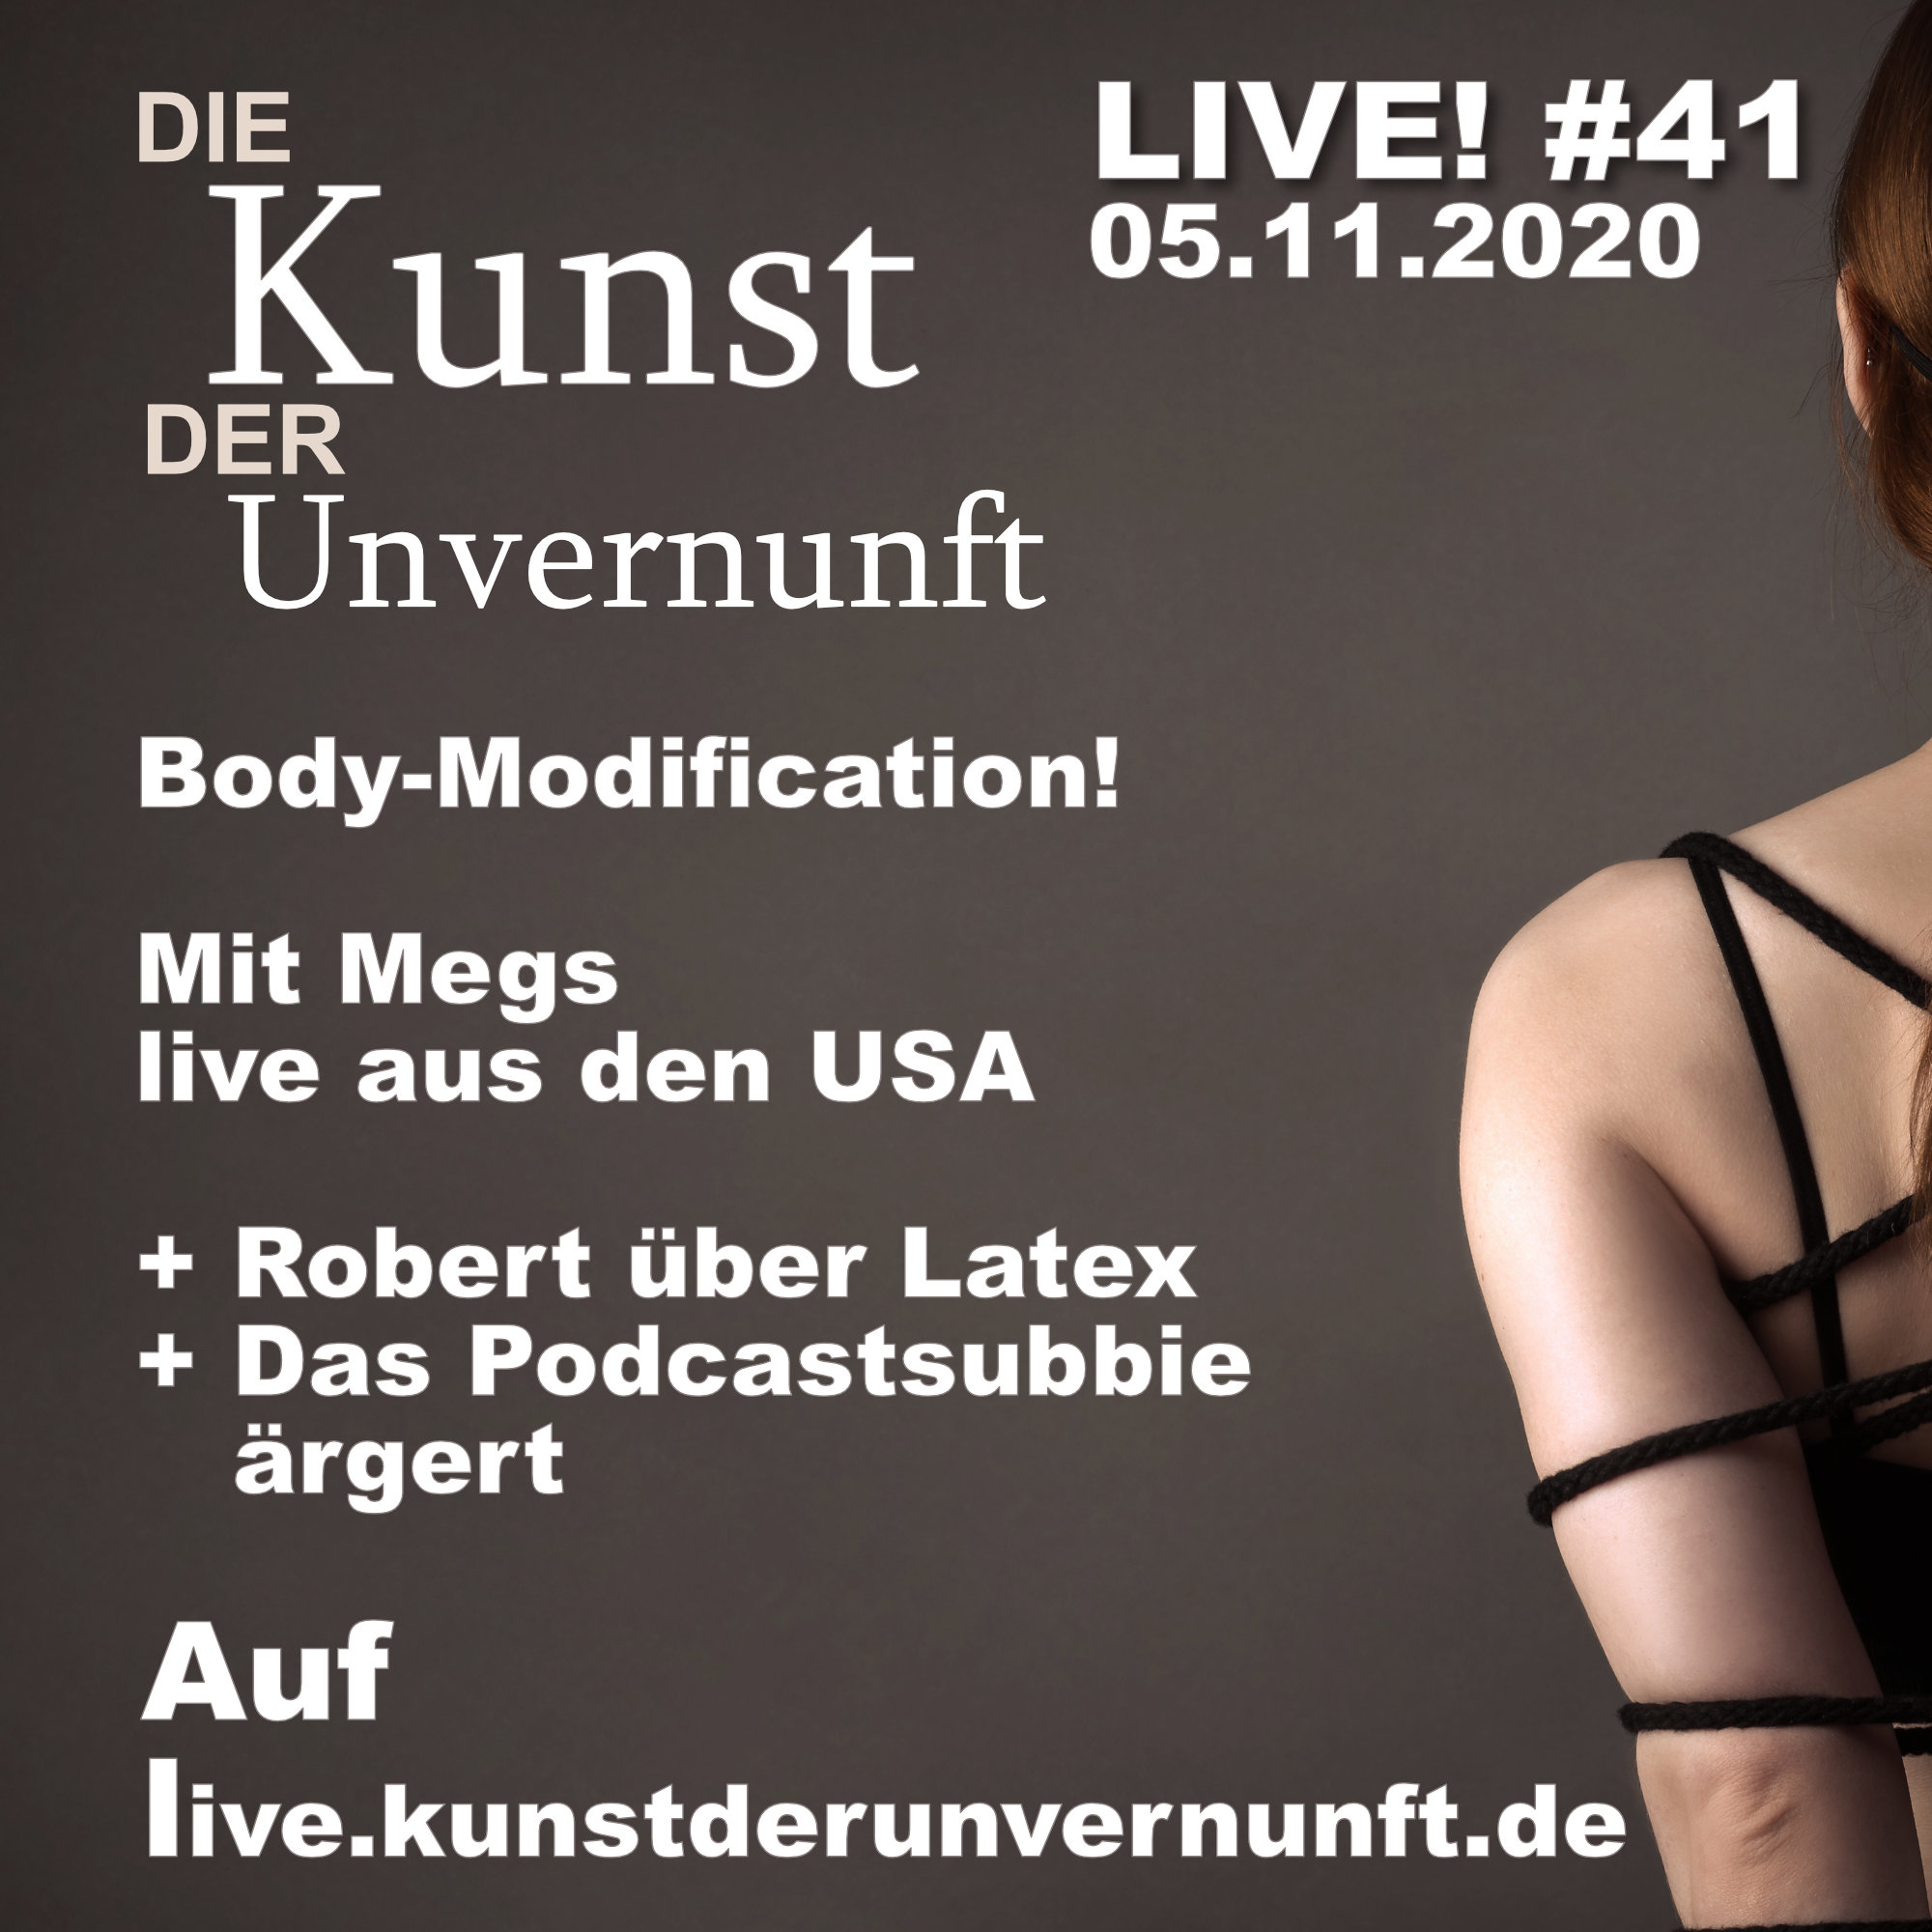 Unvernunft Live 05.11.20 - Body-Modification